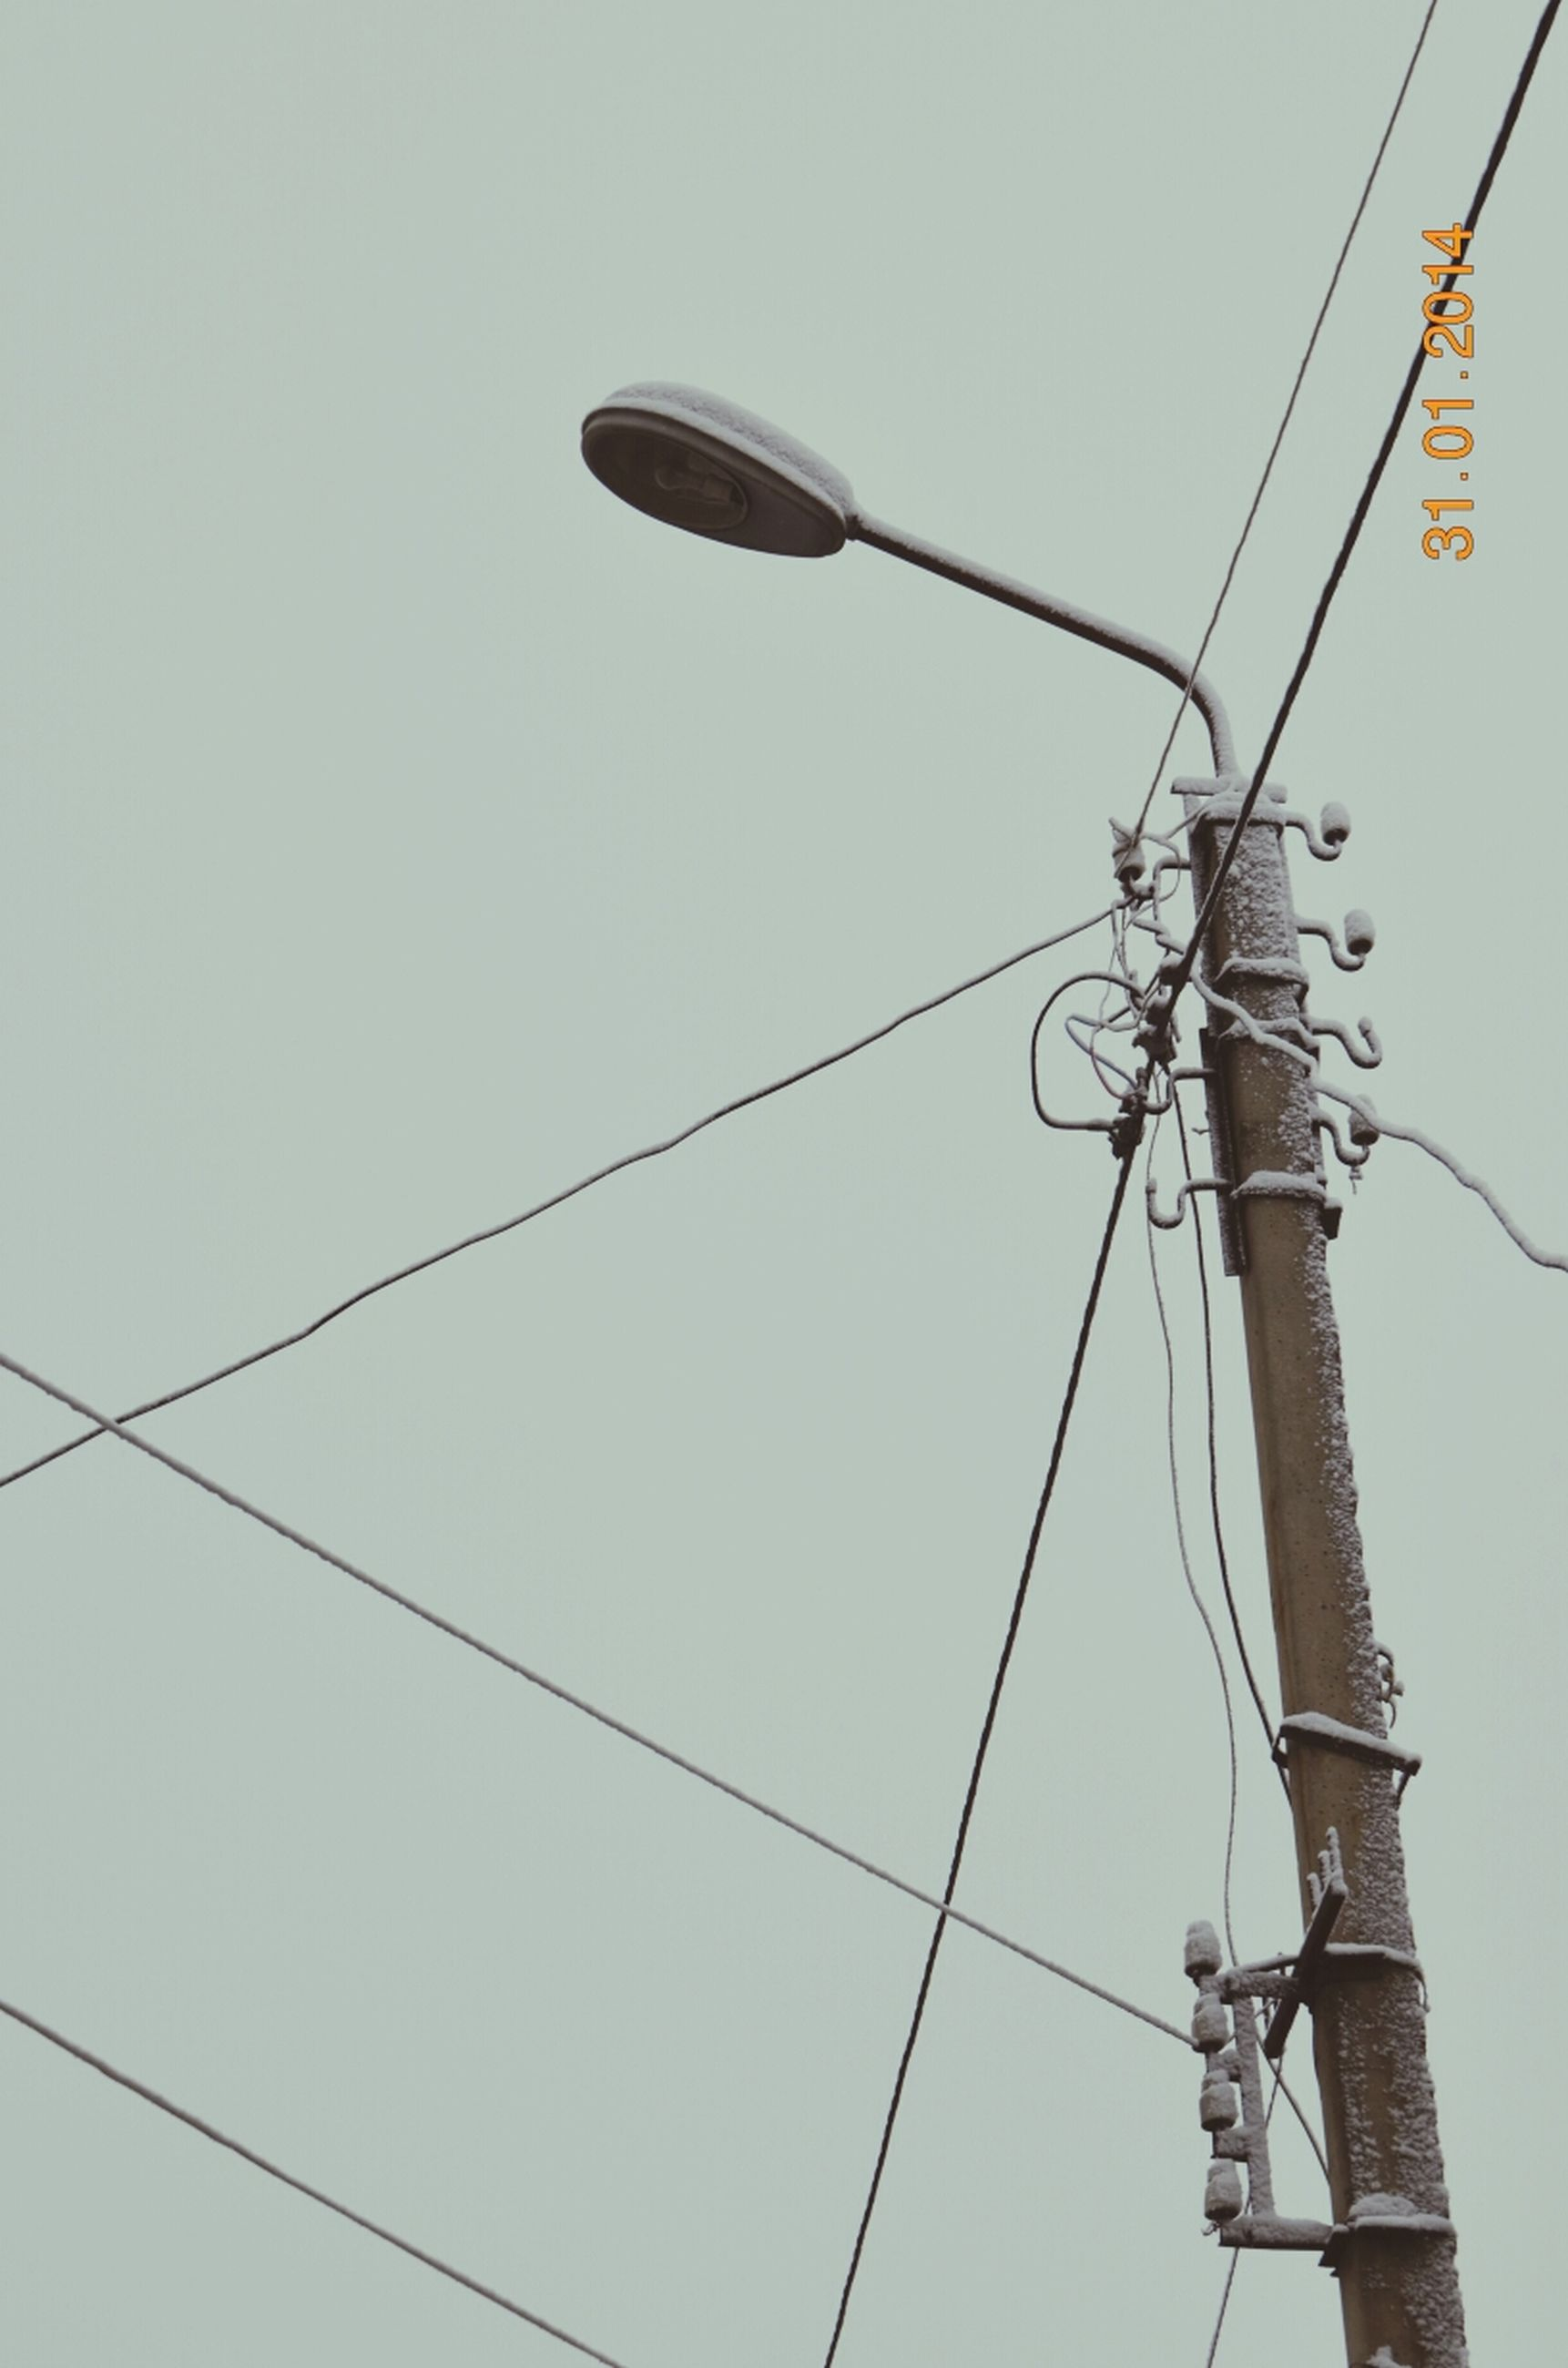 low angle view, power line, cable, electricity, clear sky, power supply, connection, electricity pylon, technology, fuel and power generation, pole, complexity, hanging, copy space, sky, power cable, lighting equipment, day, outdoors, no people